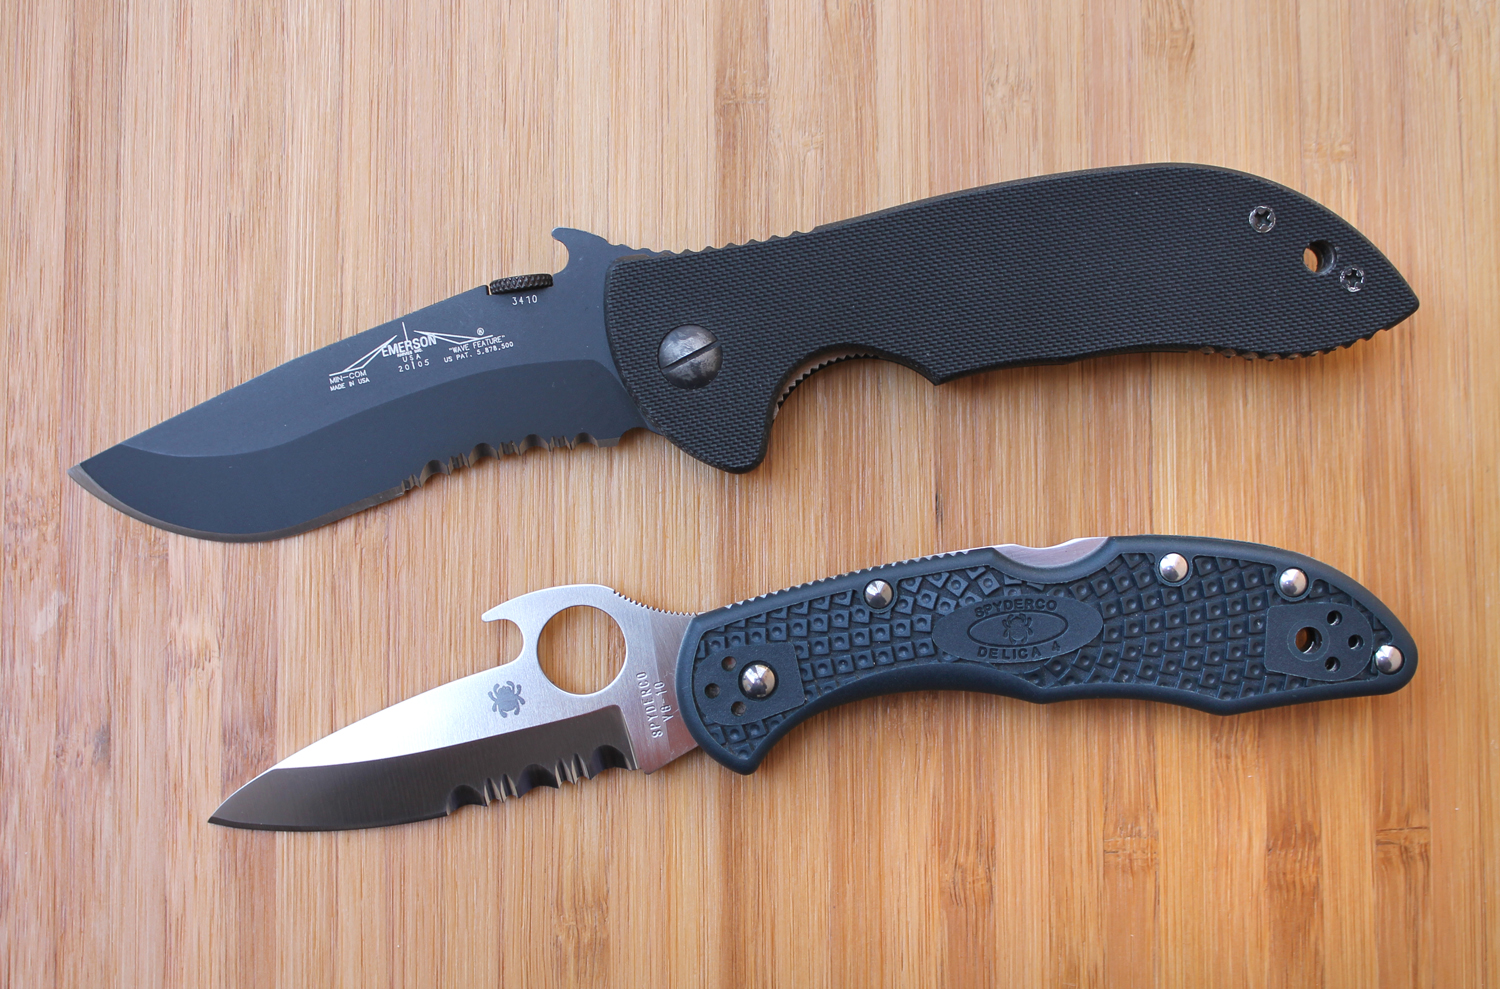 Spyderco delica and endura with emerson opener review for The emerson